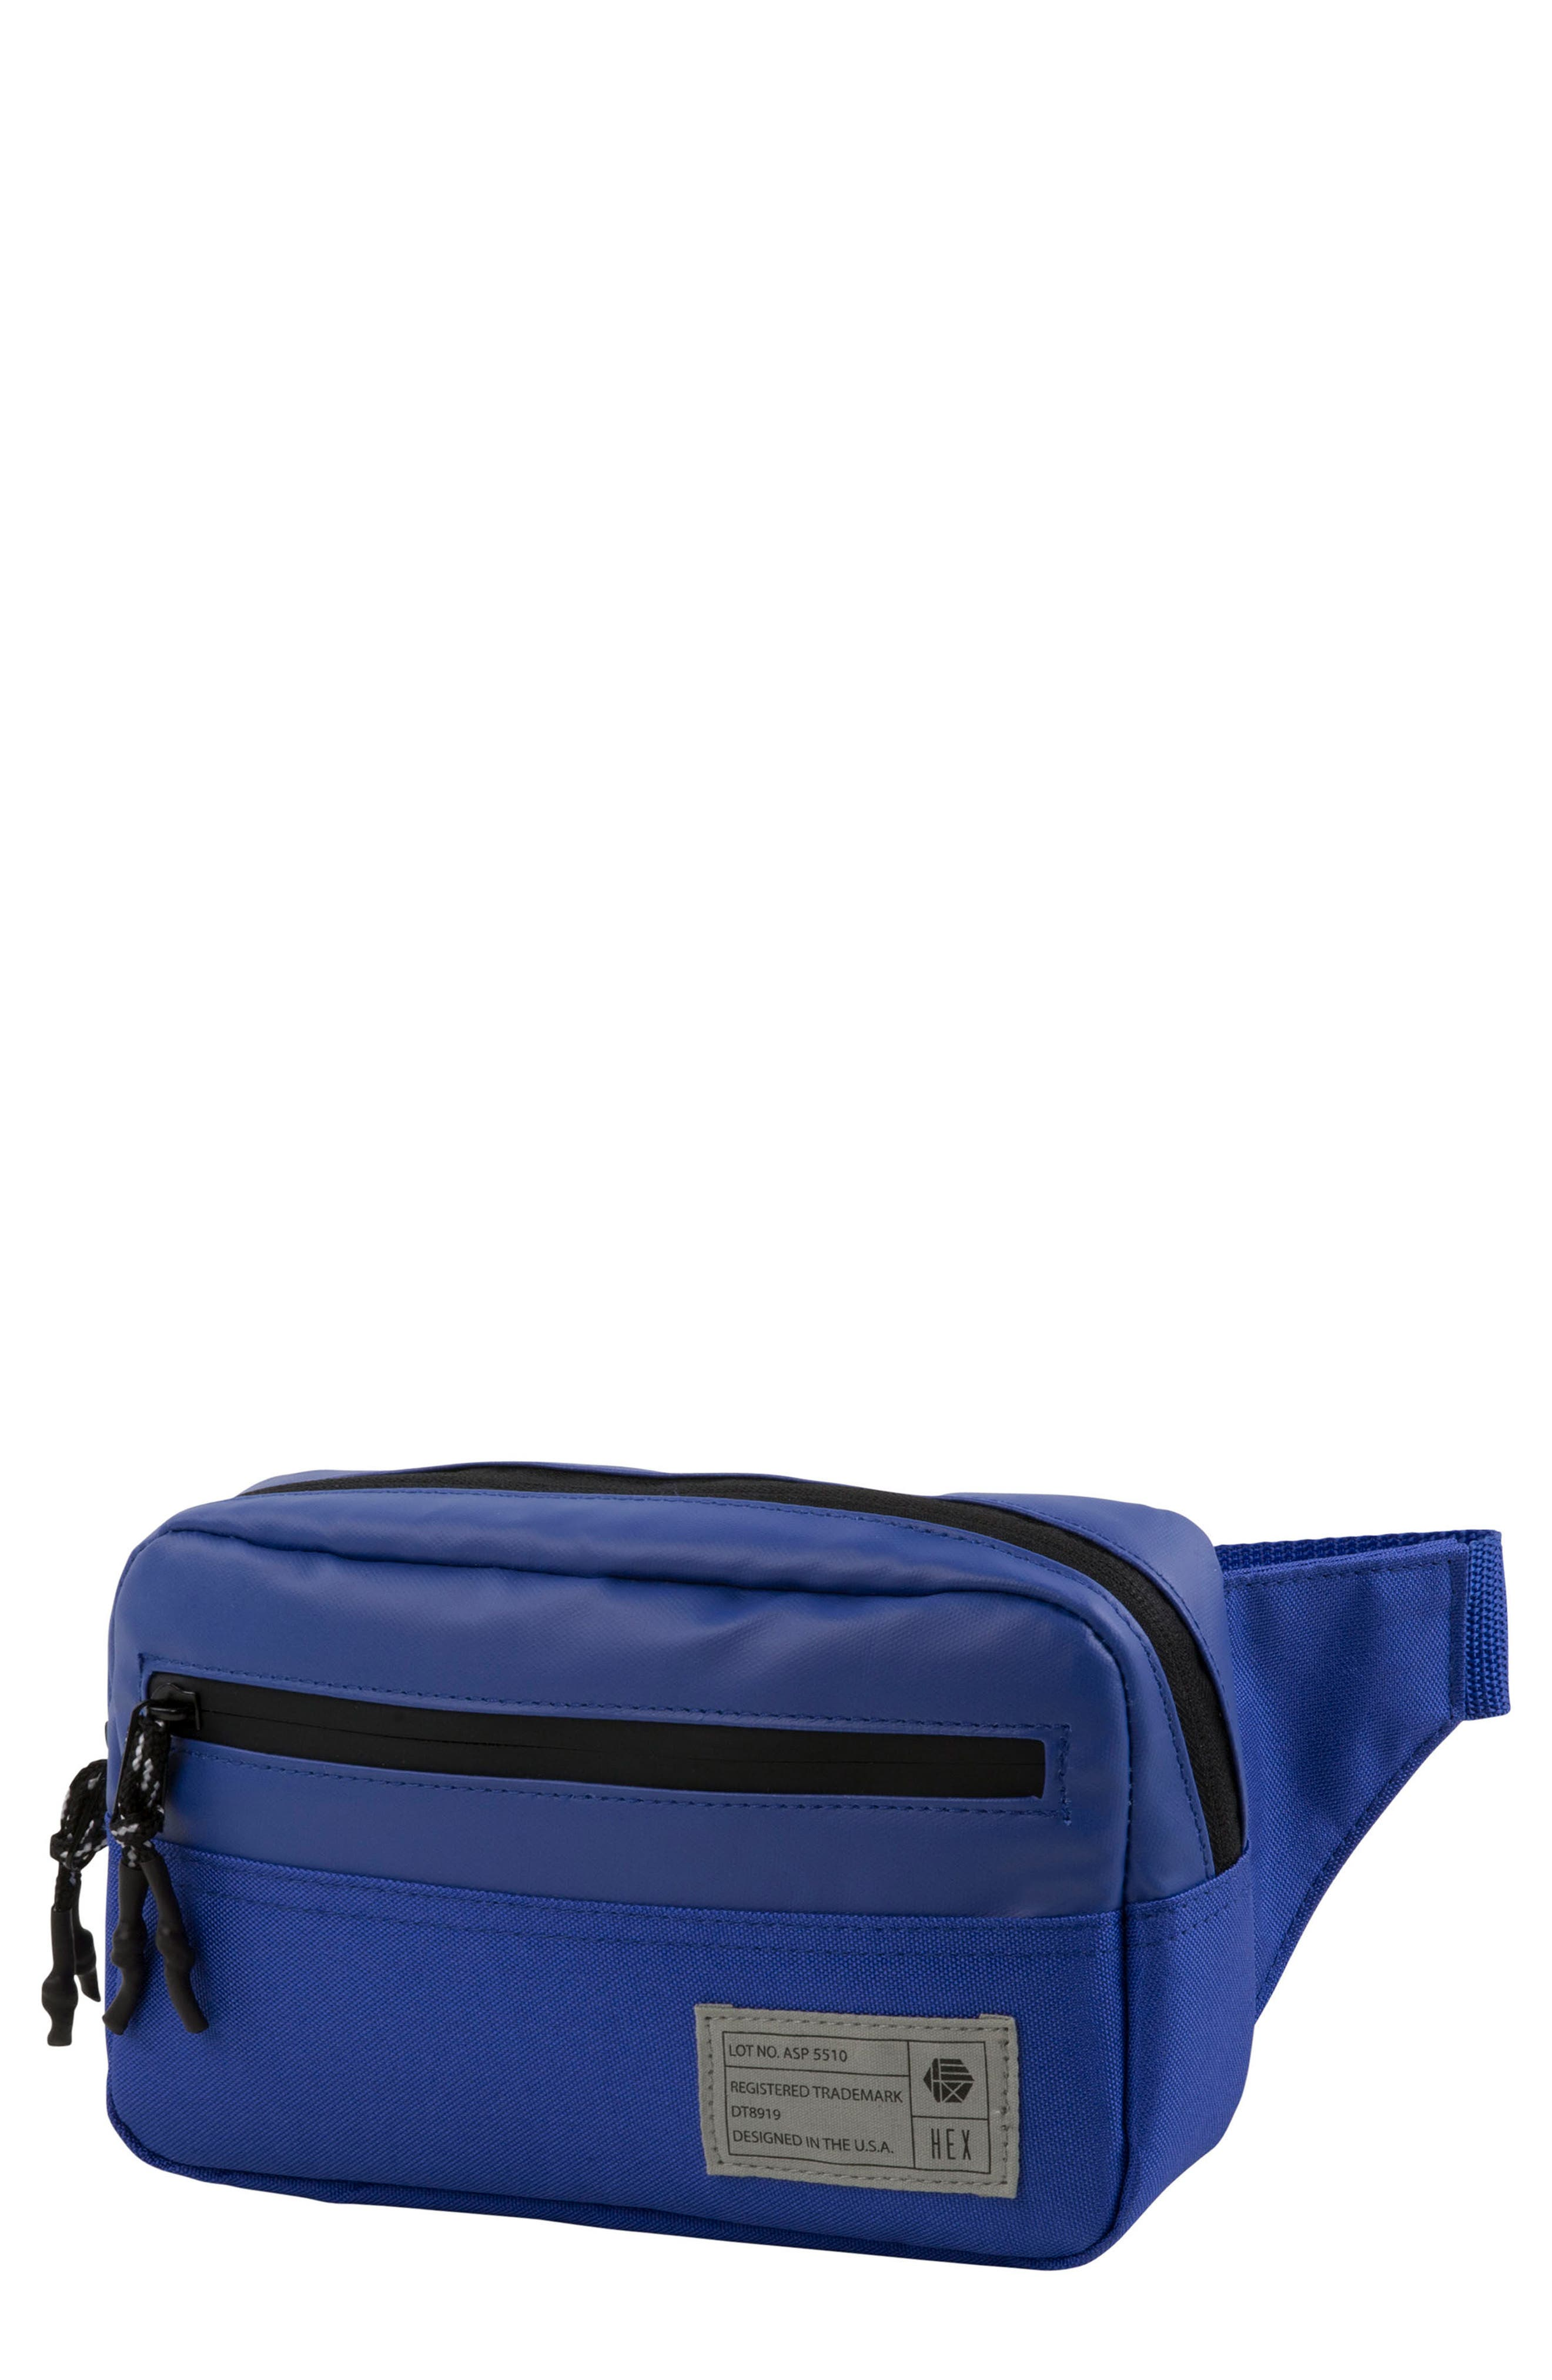 HEX Aspect Collection Water Resistant Waist Pack